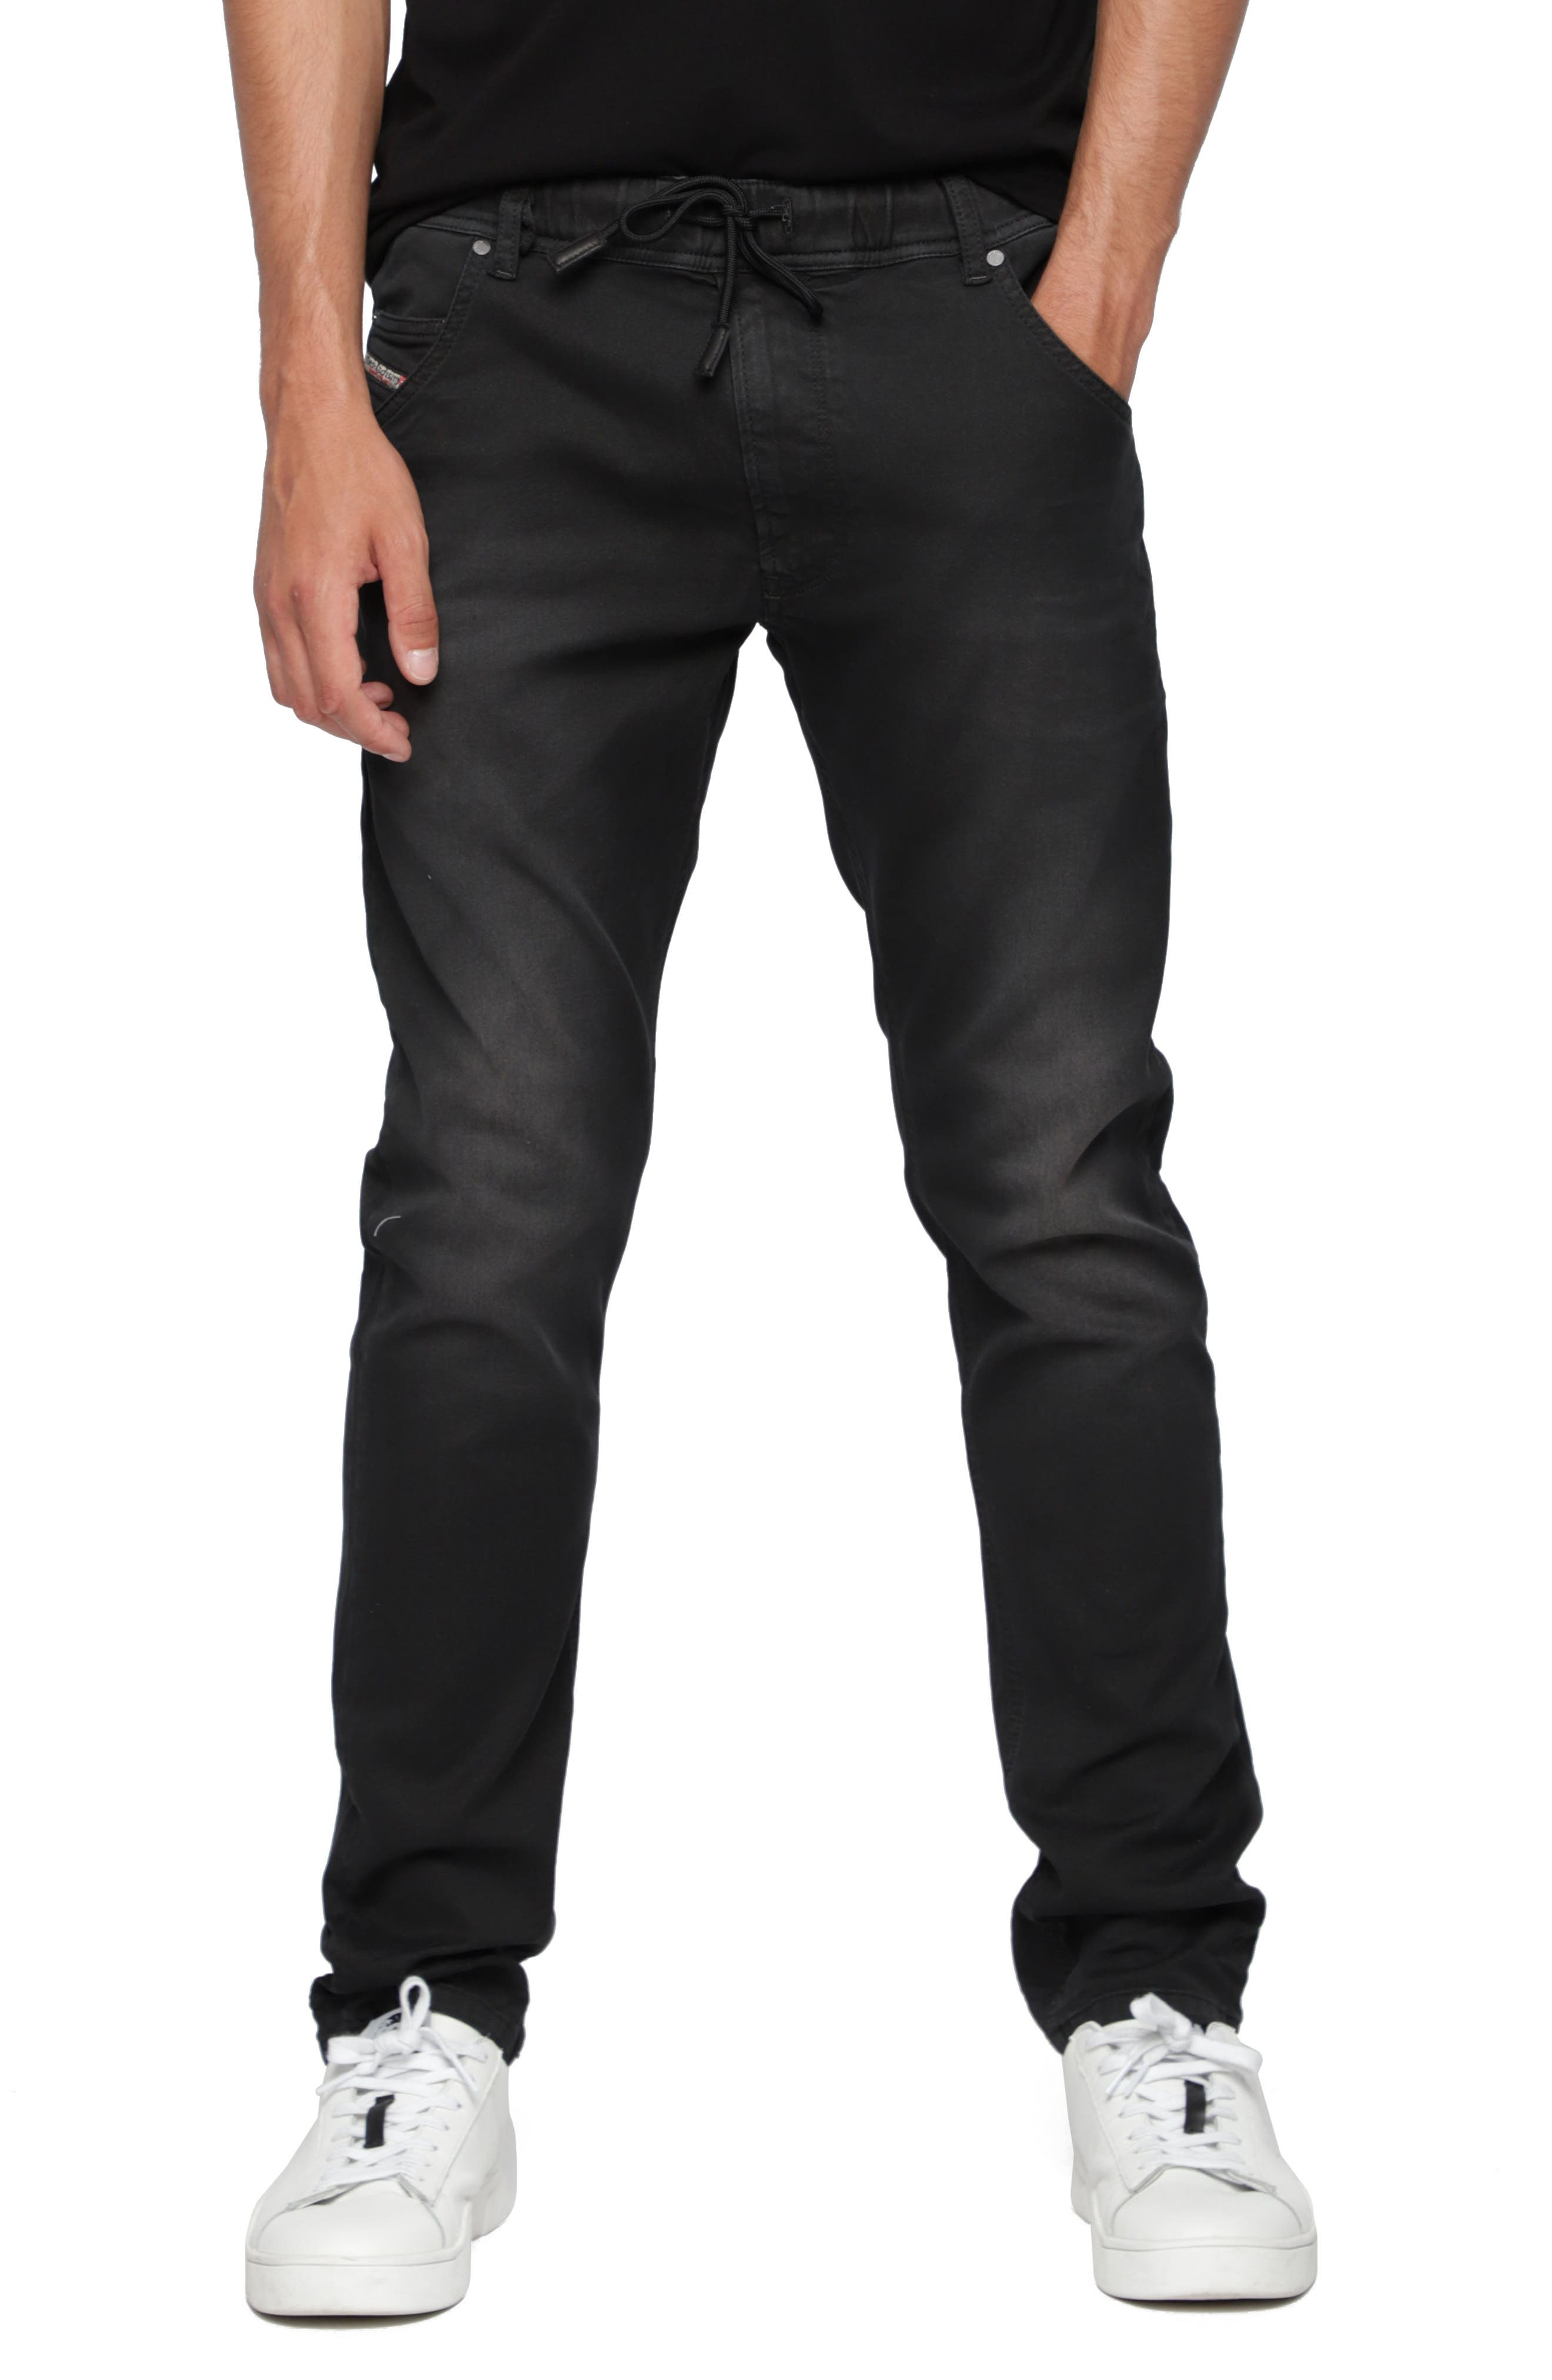 Krooley Slouchy Skinny Fit Jeans,                             Main thumbnail 1, color,                             0670M